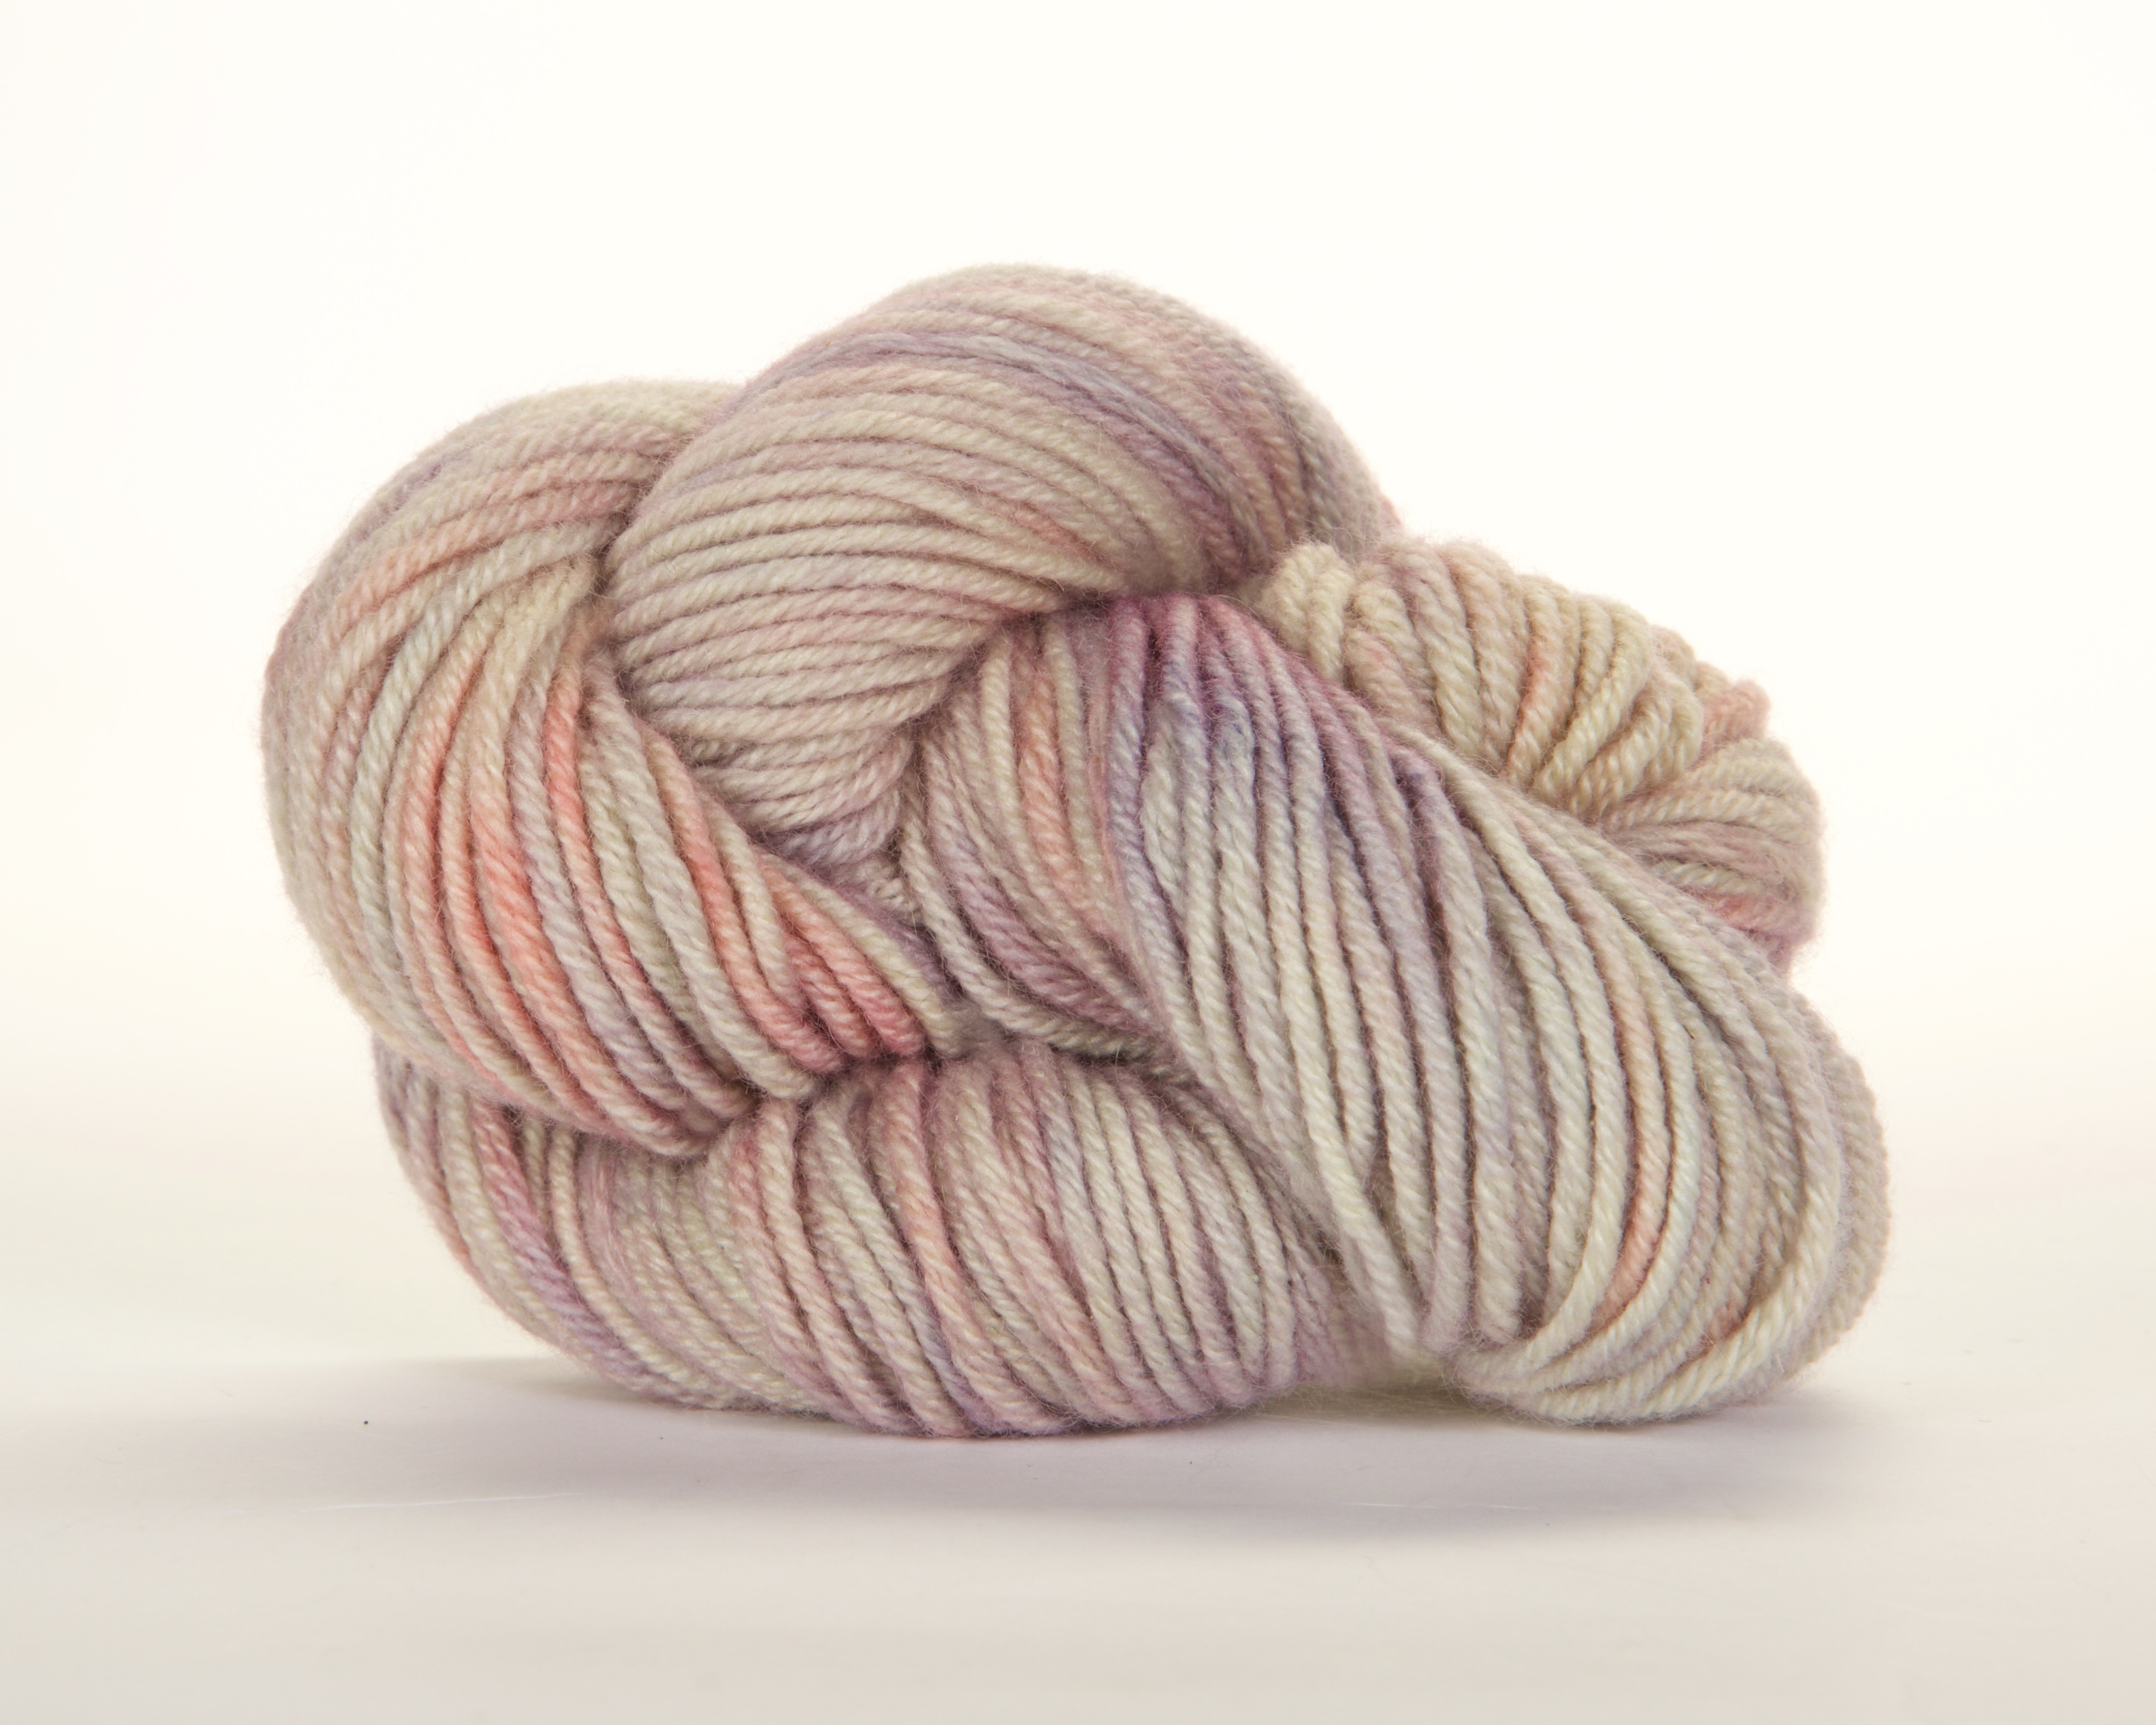 Colorways-206-Pudding-and-pie, Pudding and Pie